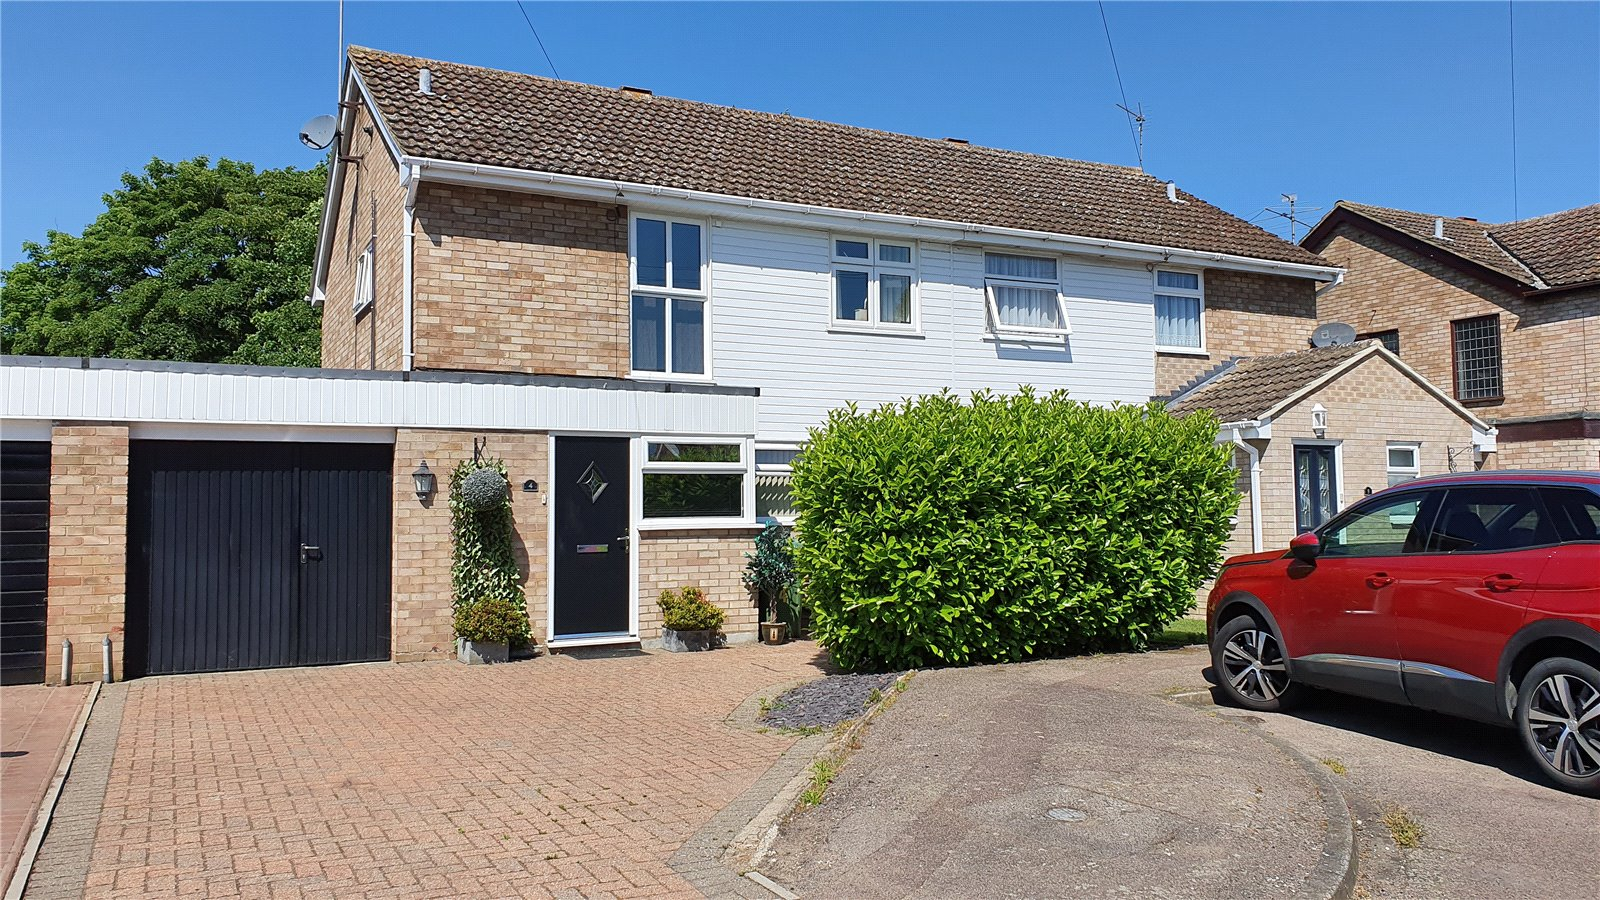 3 bed house for sale in Hathaway Close, Eaton Socon - Property Image 1